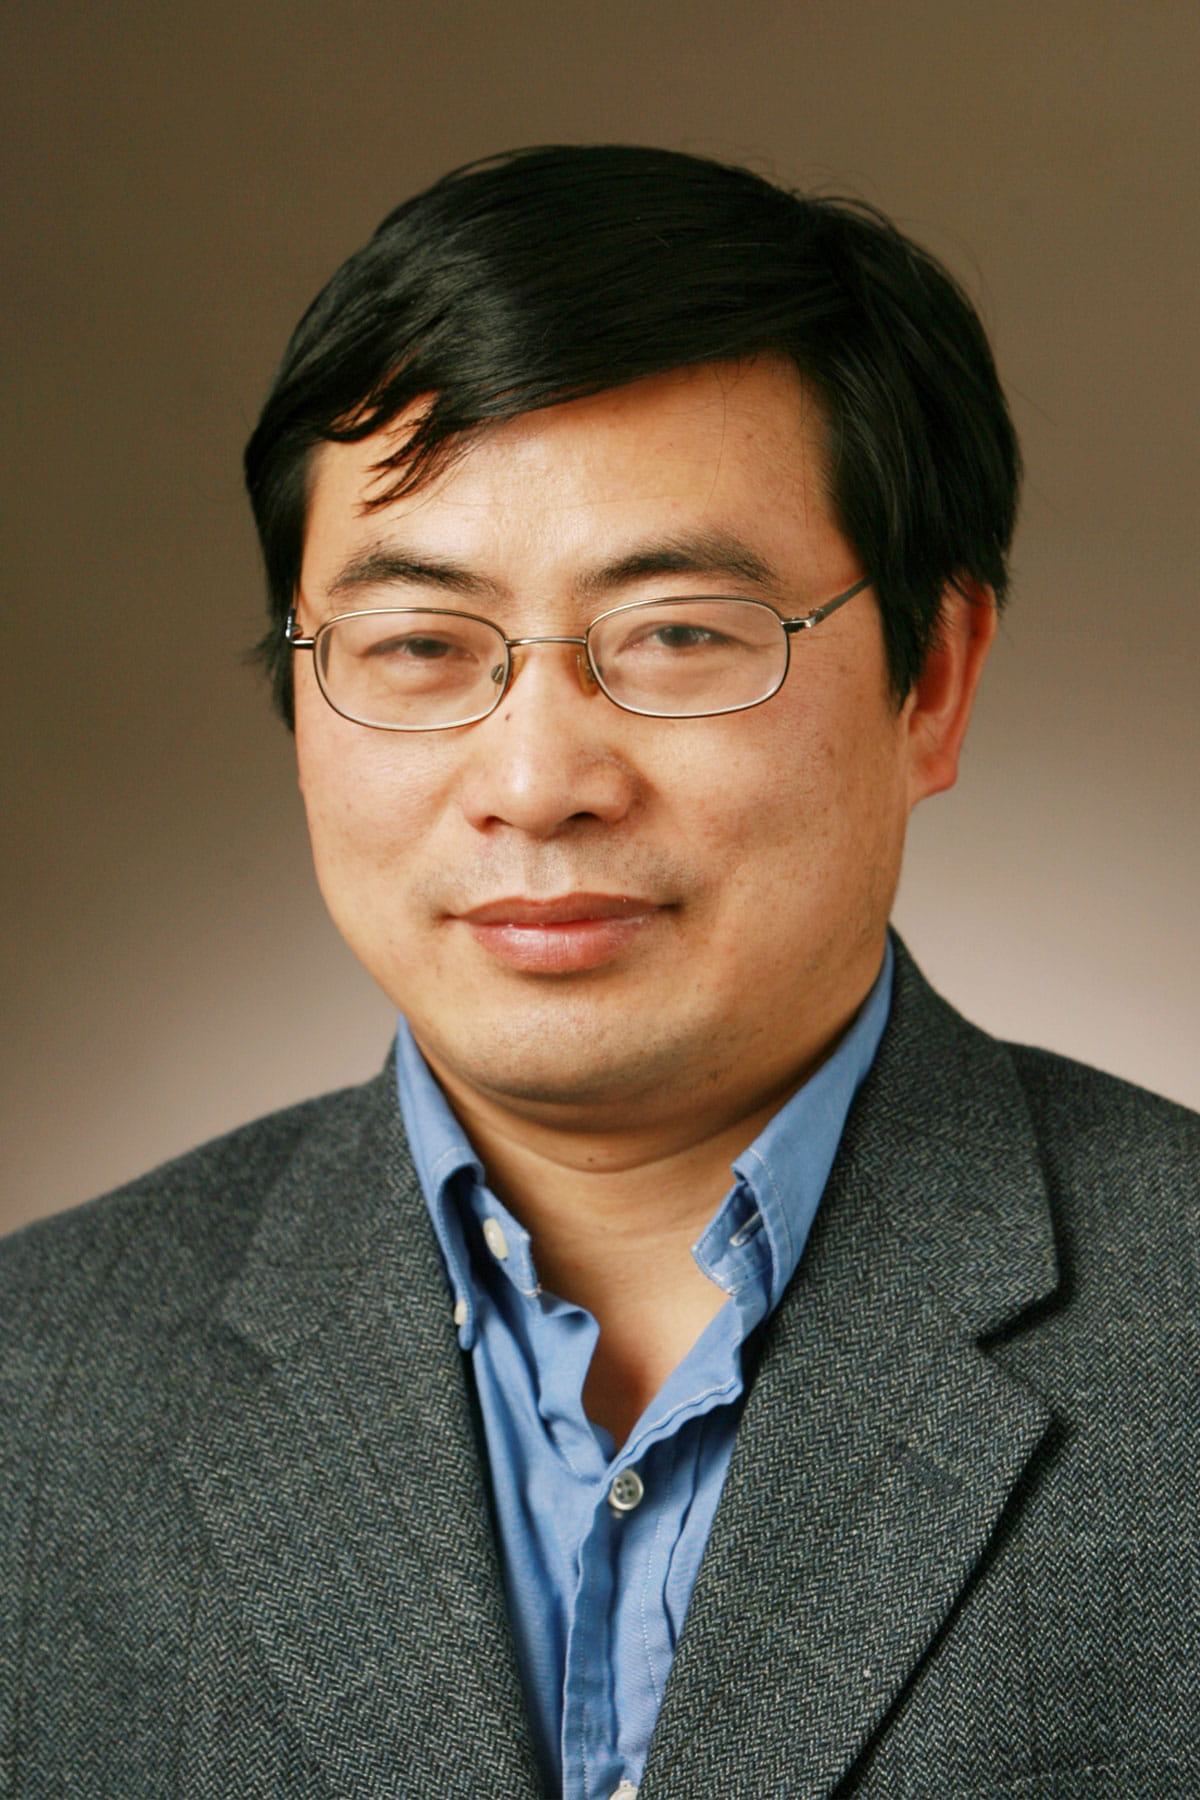 A photo of Min-Xin Guan.